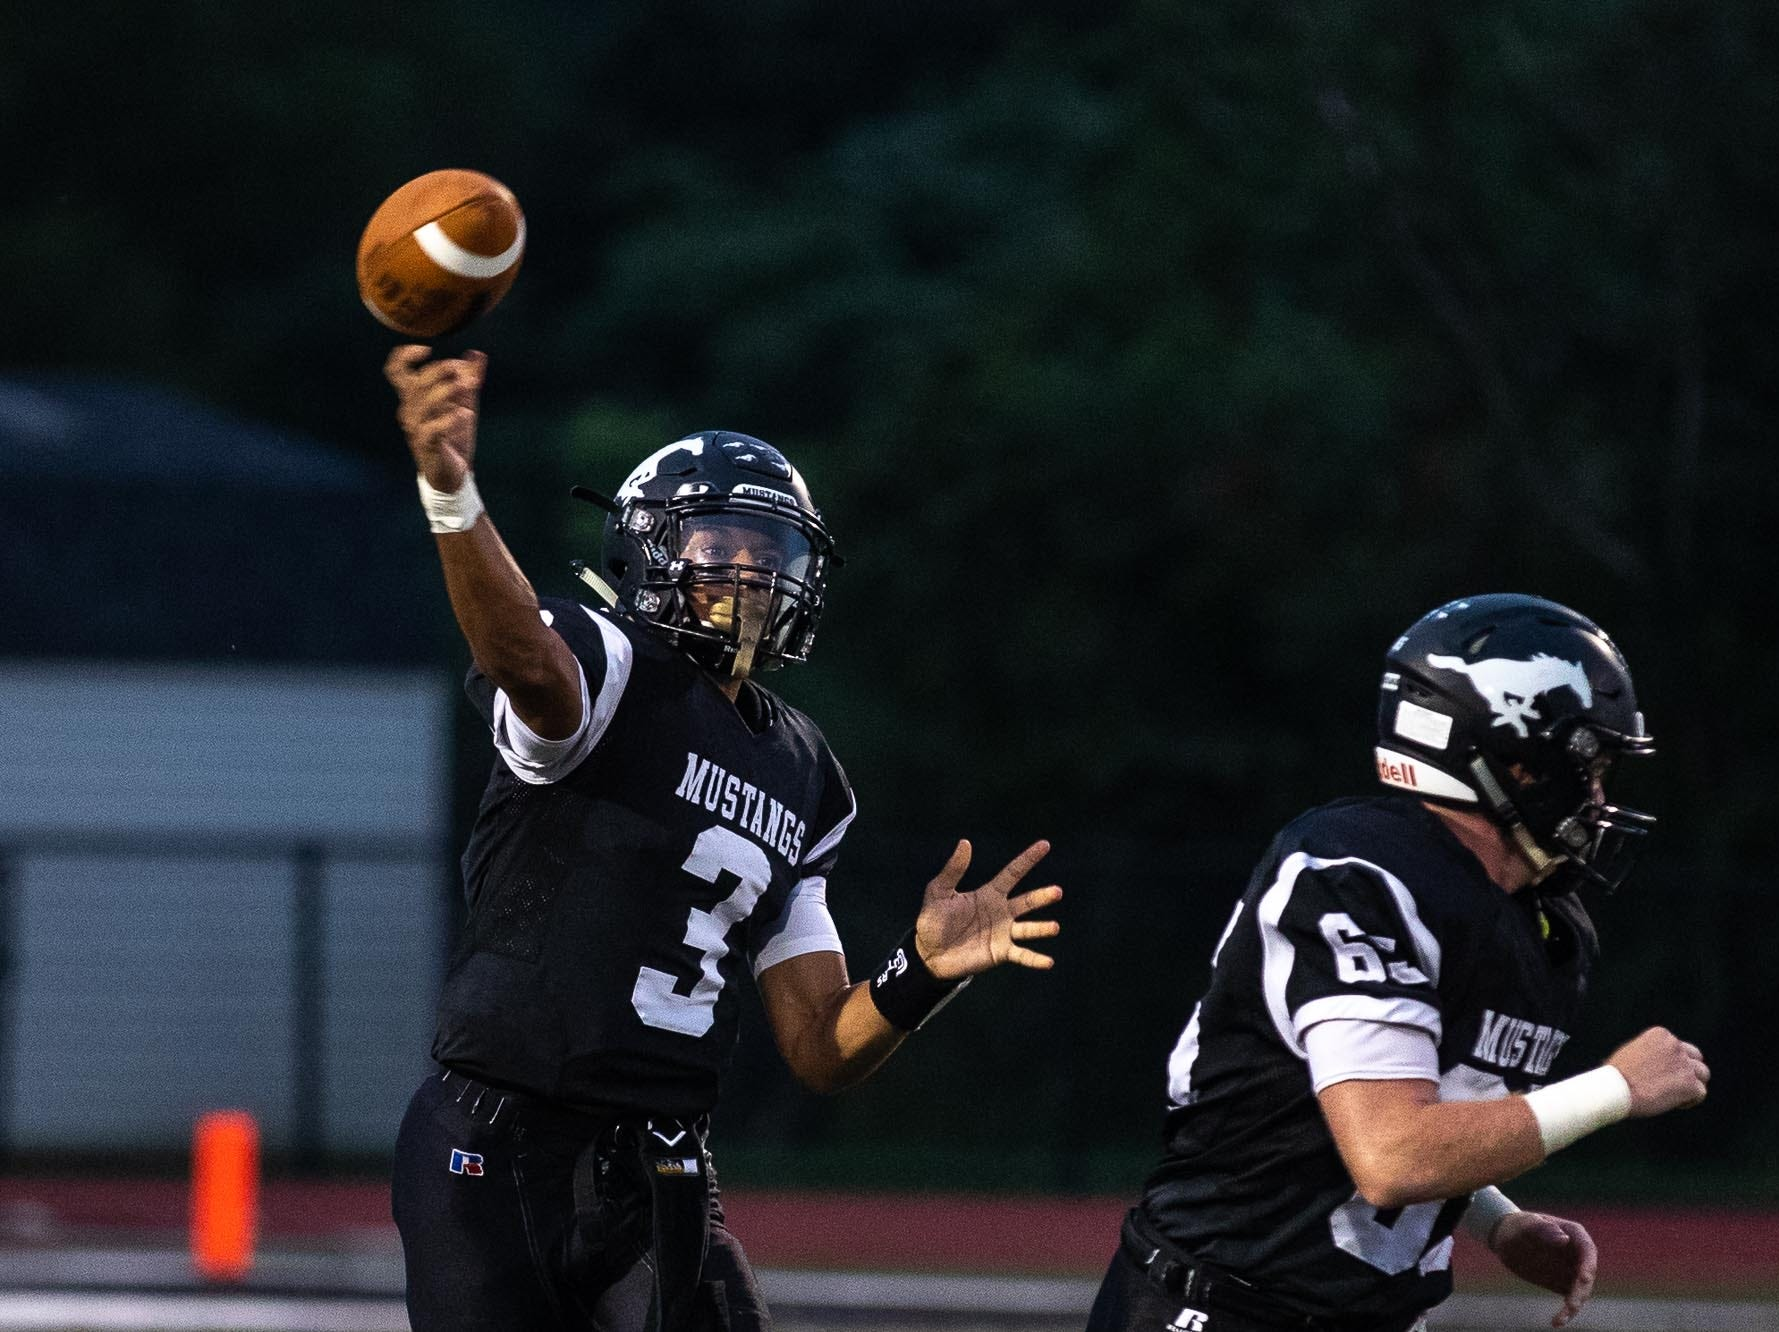 South Western's Jalen Bradford passes during a football game between South Western and Dallastown, Friday, Sept. 14, 2018, at South Western High School in Penn Township. Dallastown won, 35-7.